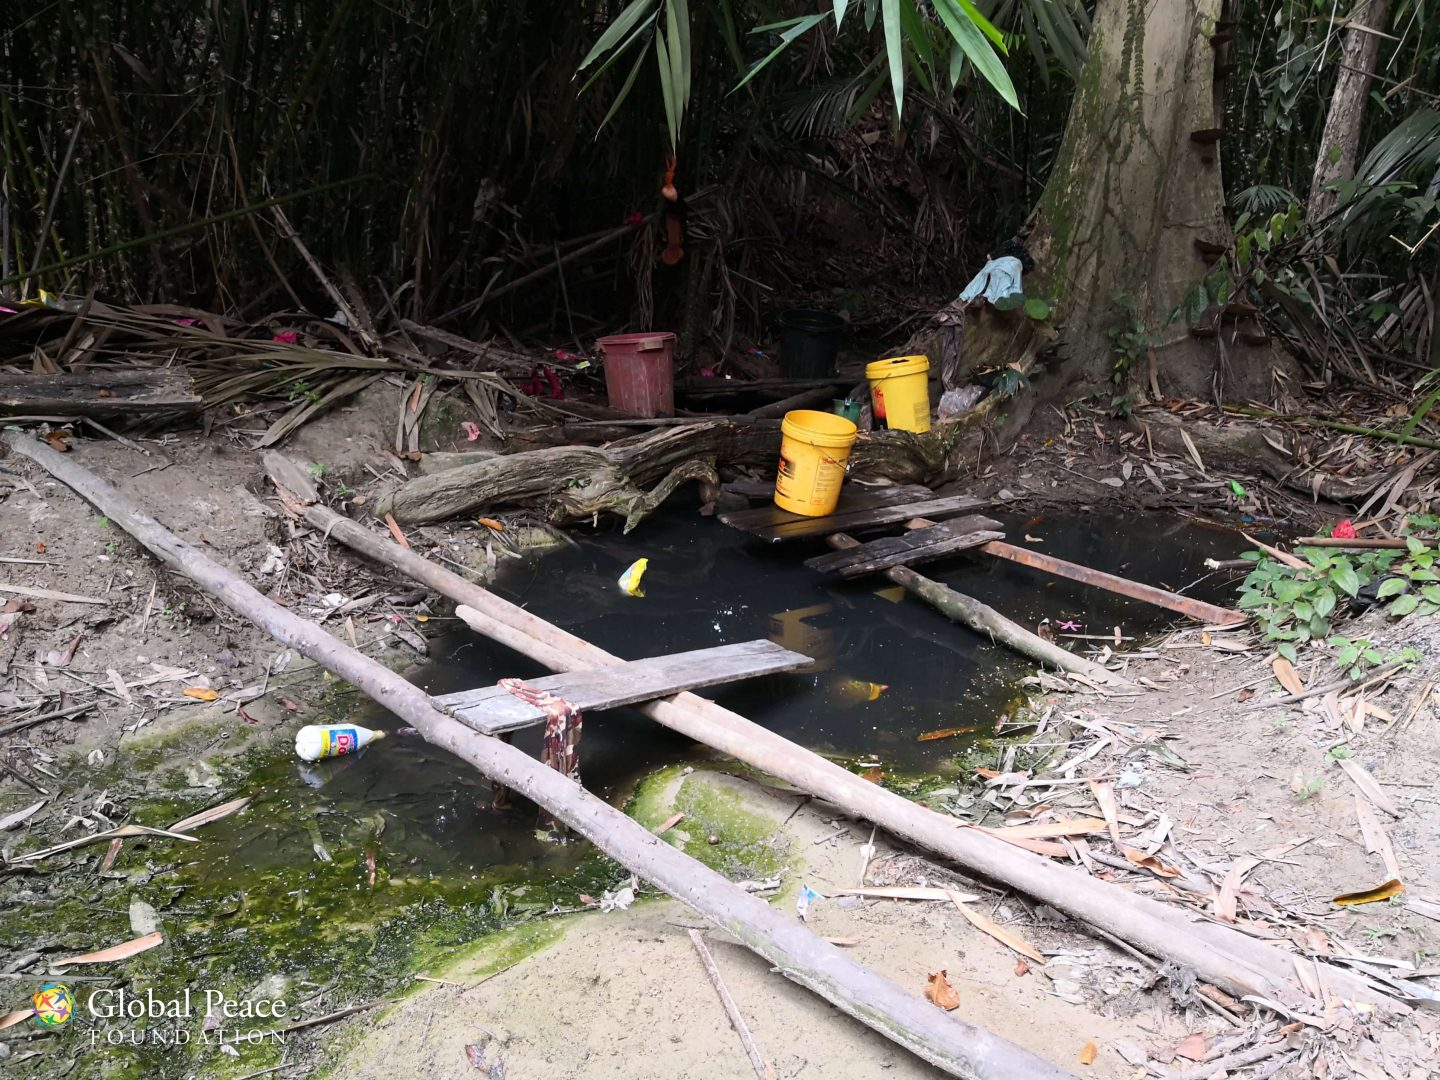 Water source in orang asli village